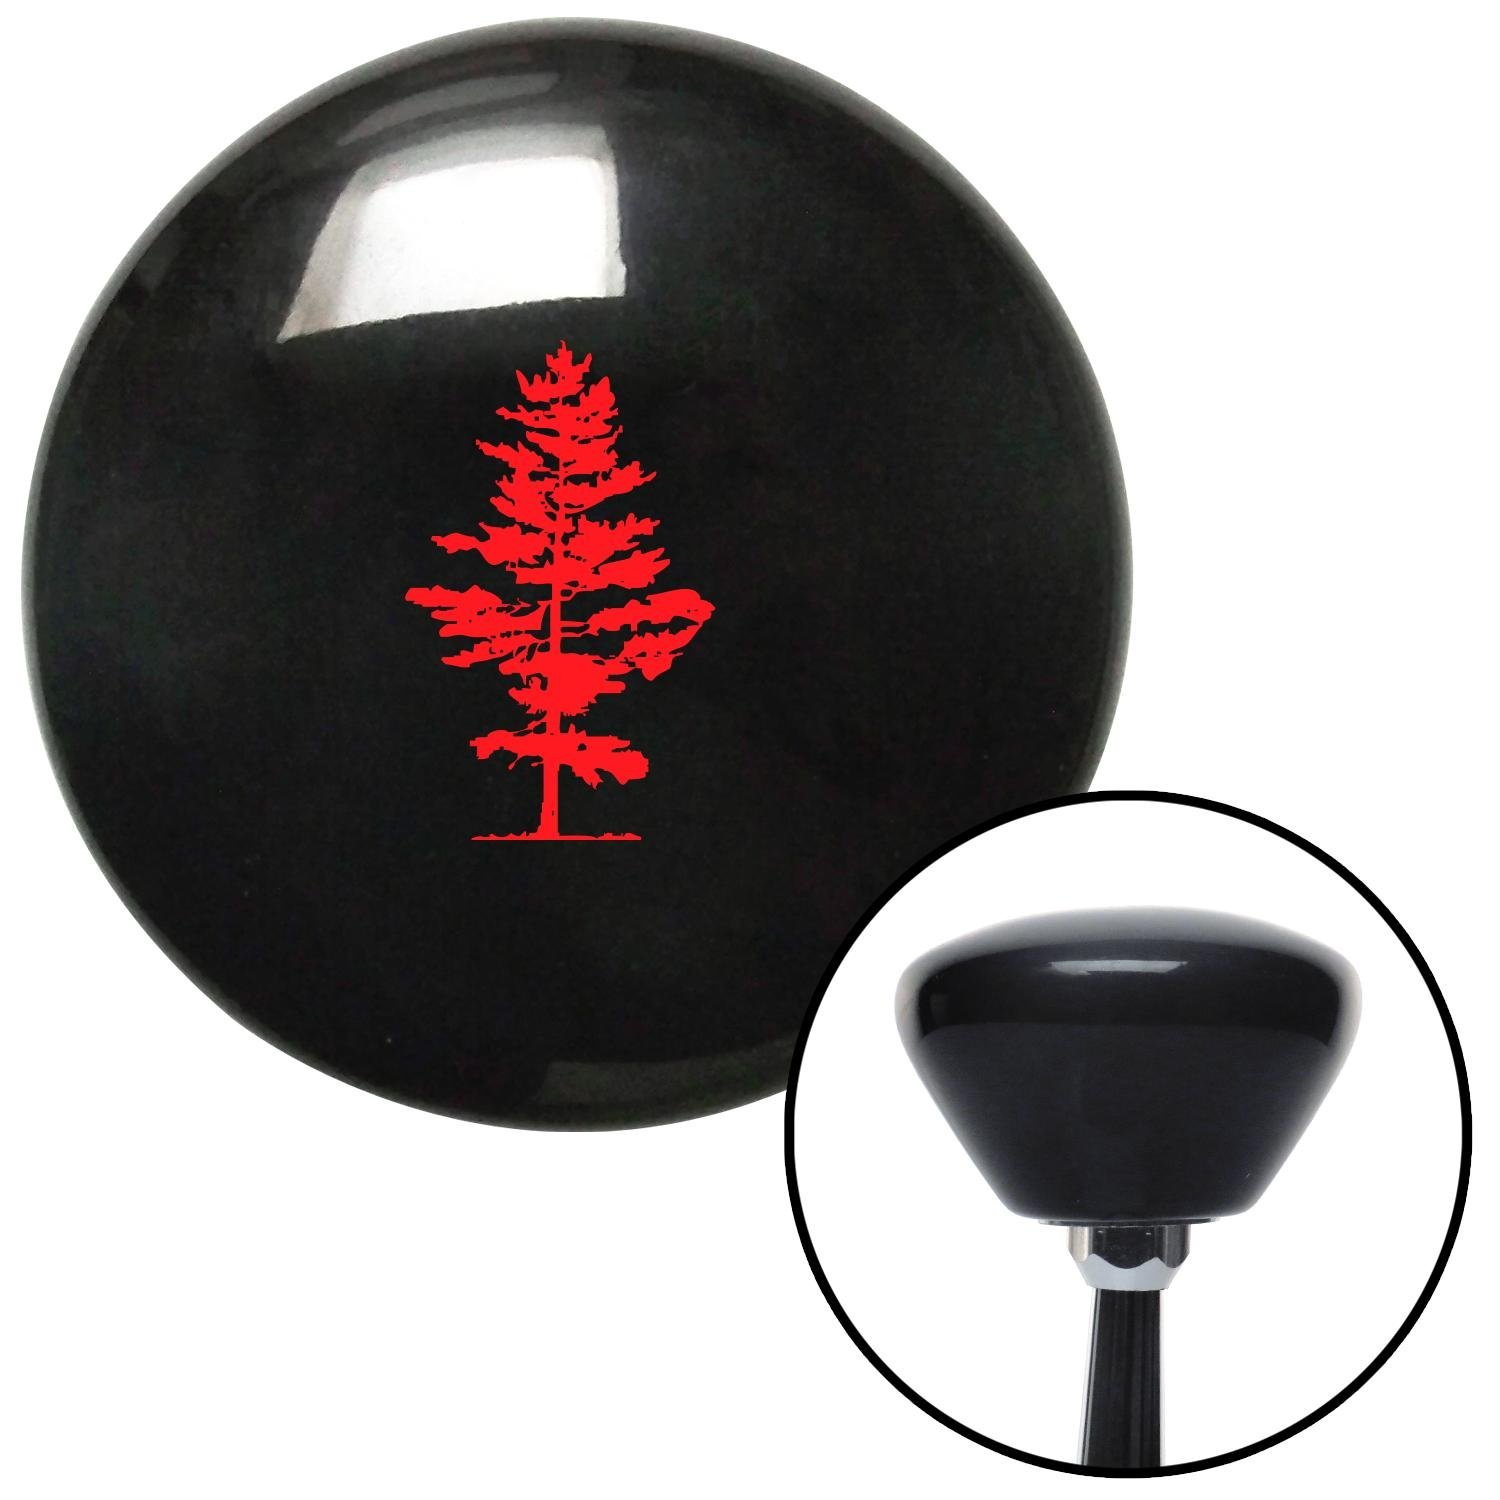 American Shifter 147251 Black Retro Shift Knob with M16 x 1.5 Insert Red Evergreen Tree